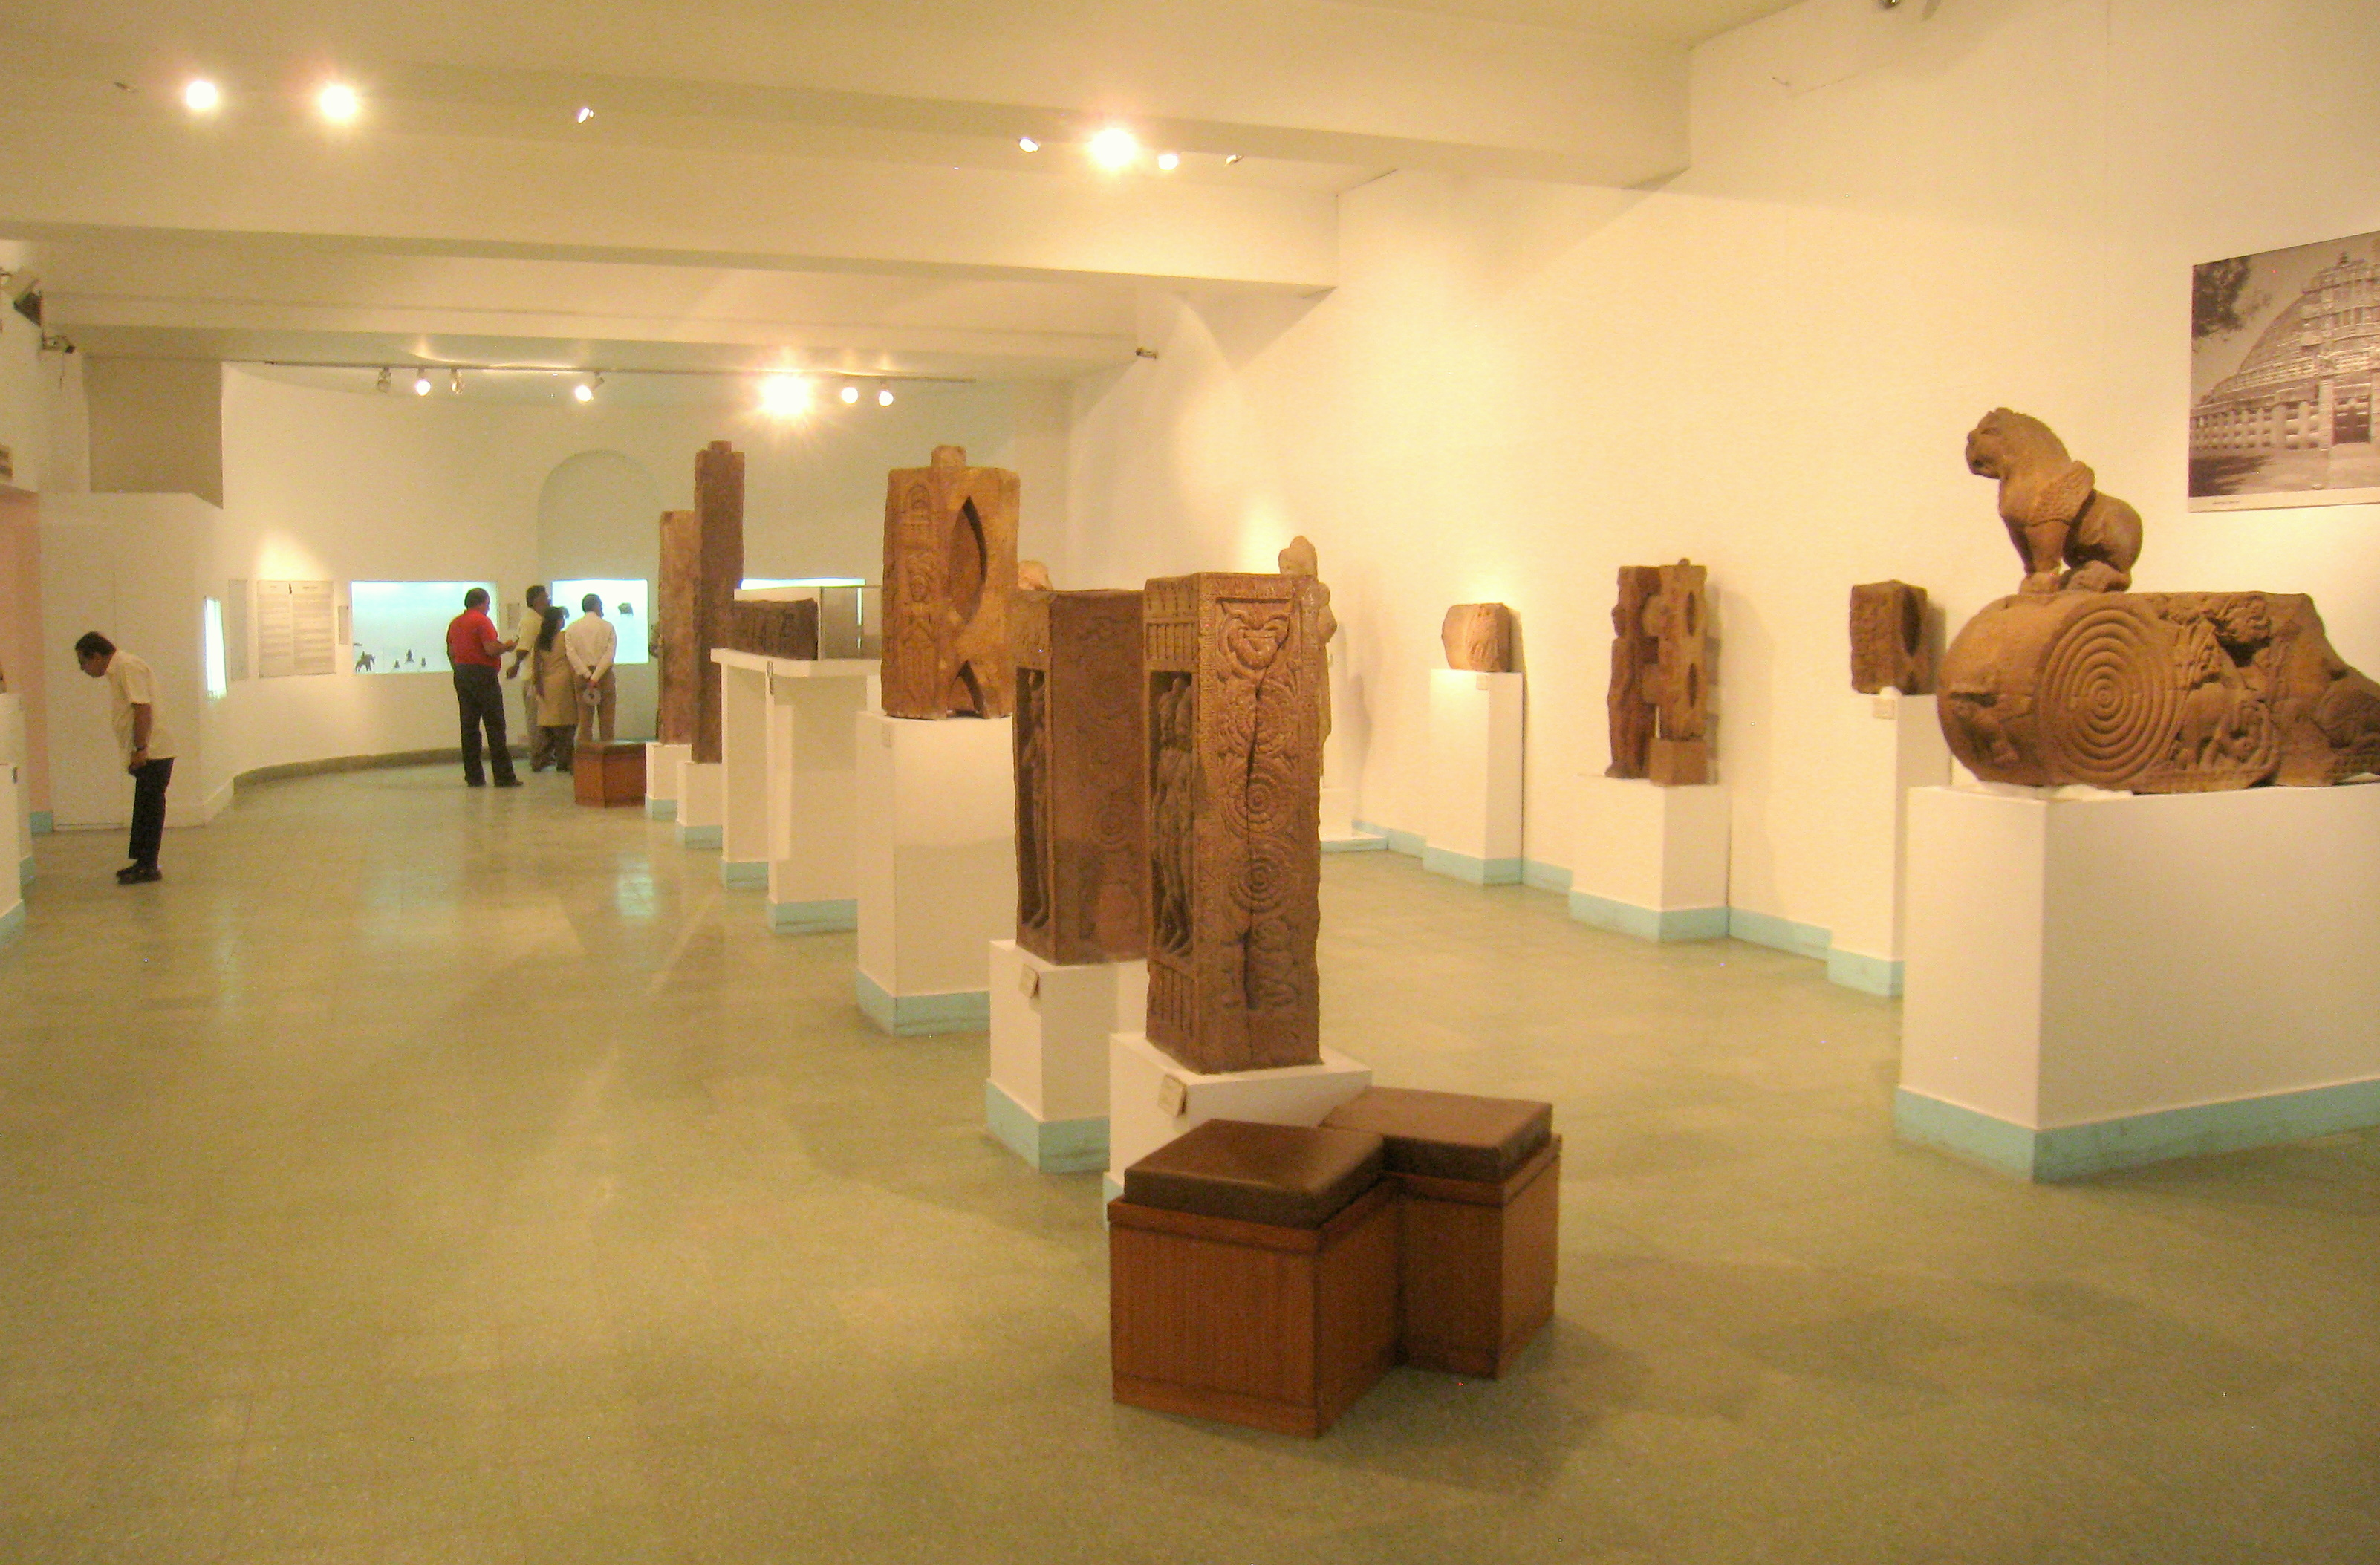 Museum on India's Struggle for Freedom Delhi, 7 museums you must visit in Delhi